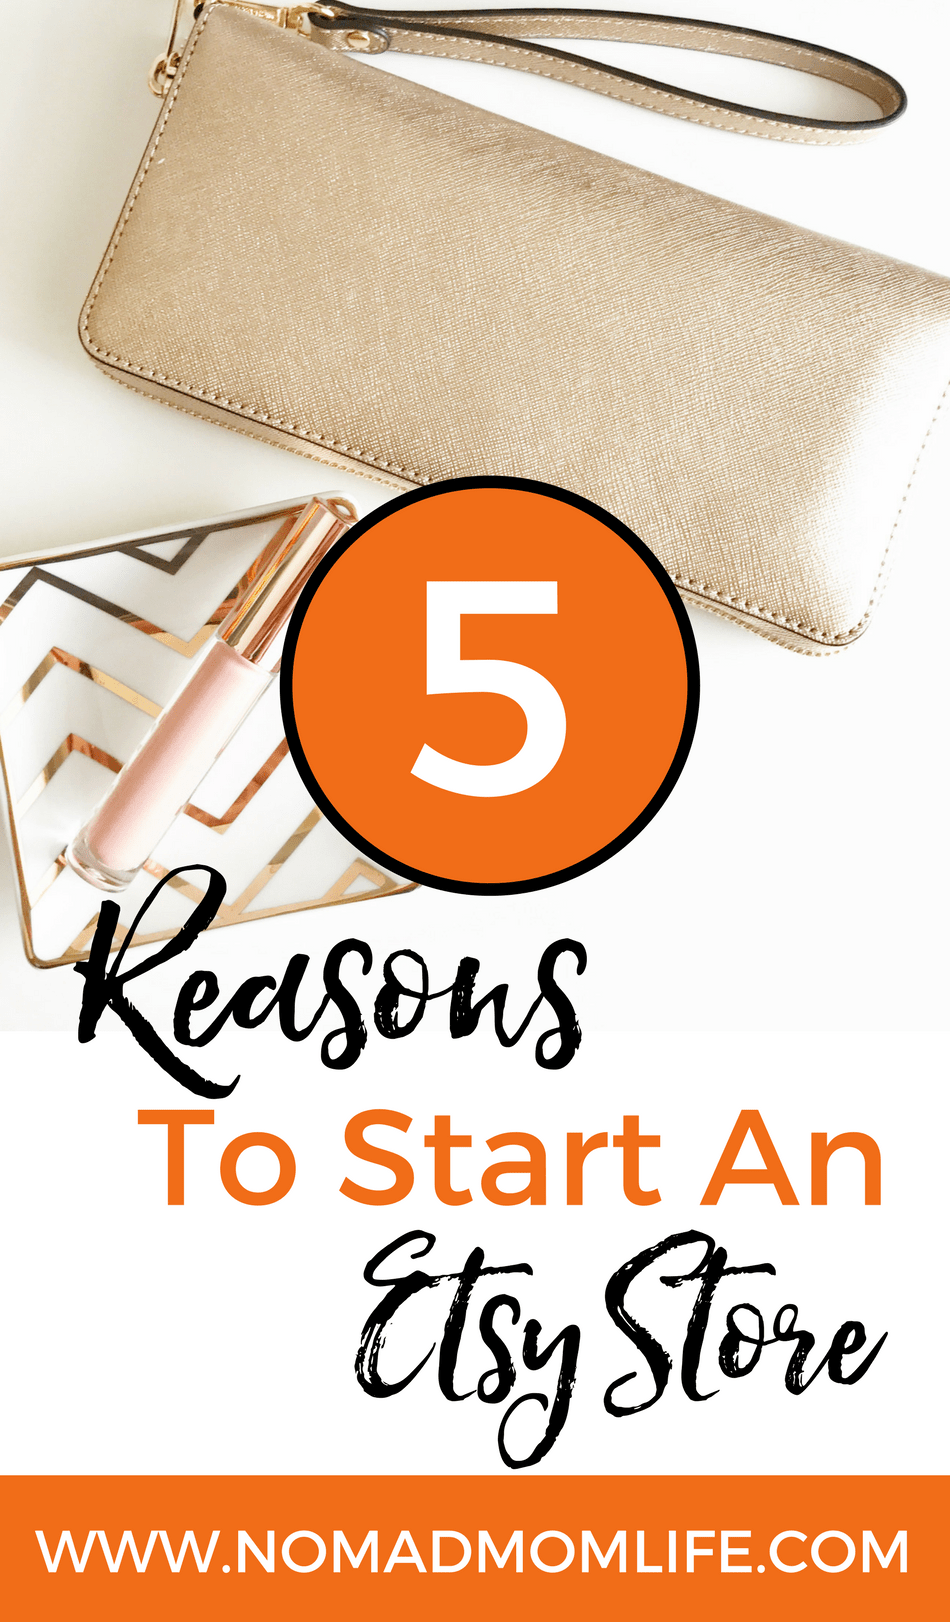 Why You Need To Start An Etsy Store